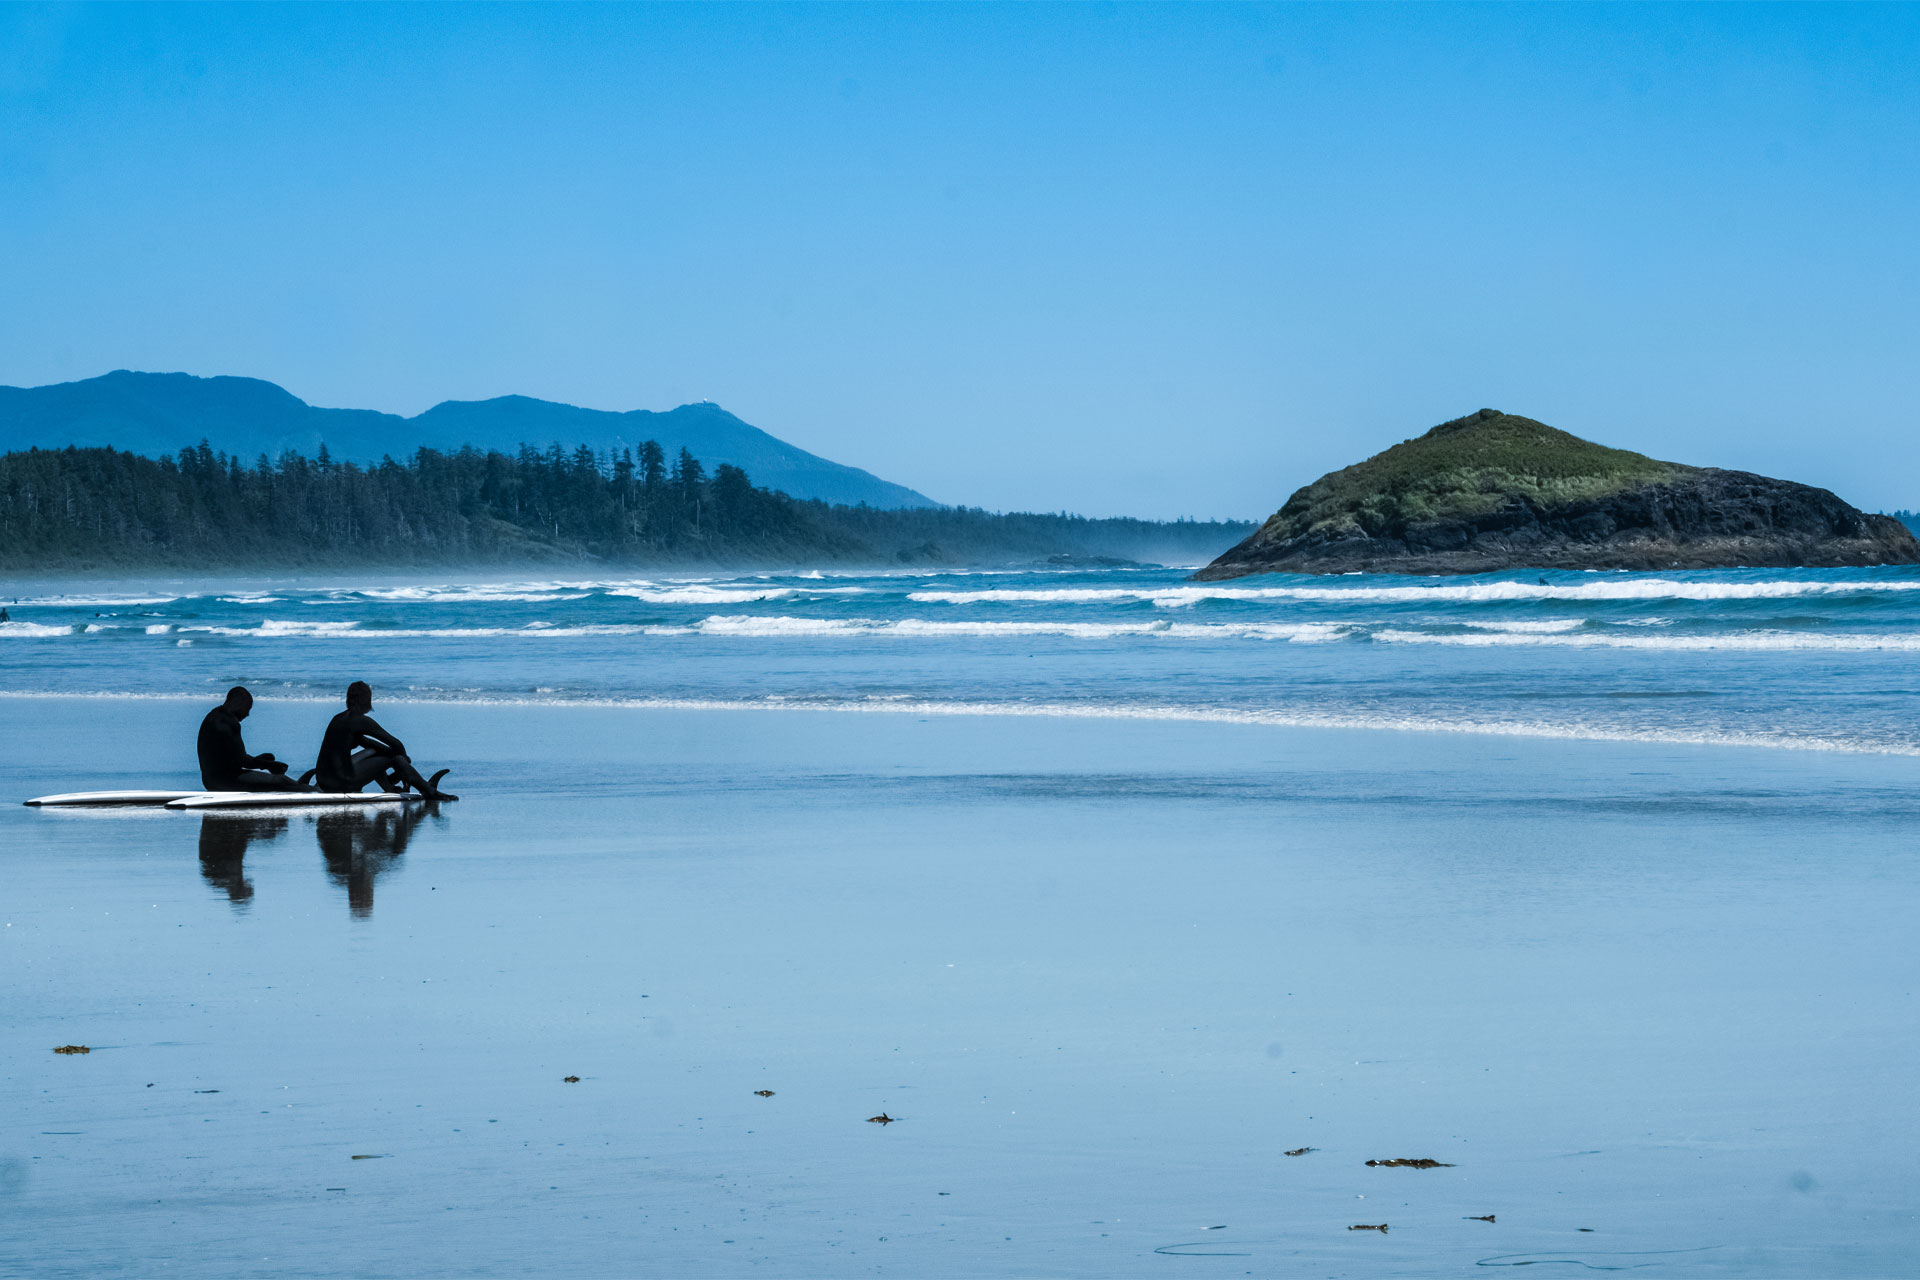 Surfing in Tofino, Canada; Courtesy of Louie Lea/Shutterstock.com